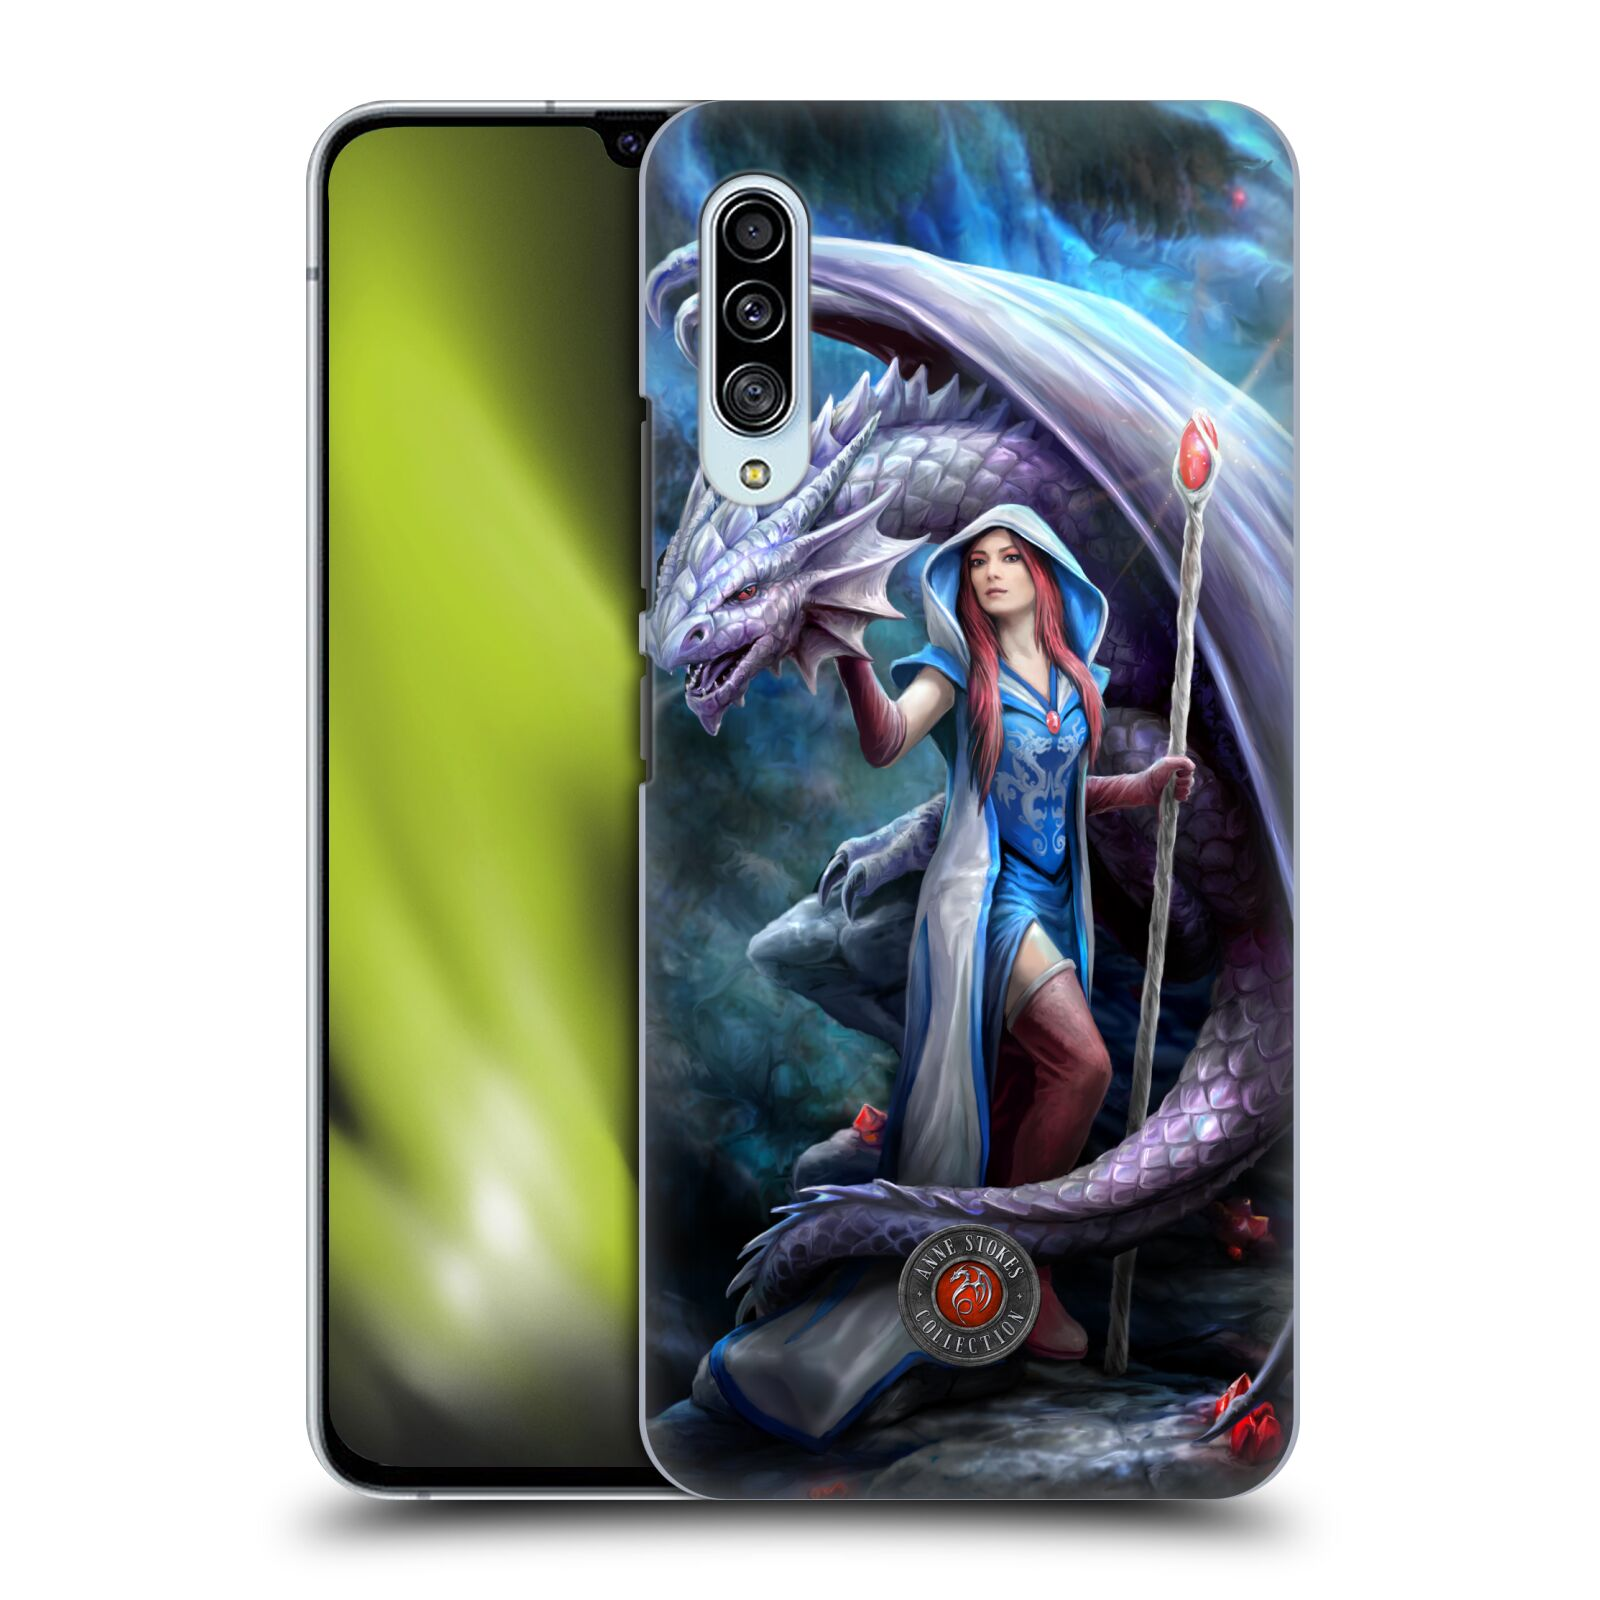 Official Anne Stokes Dragon Friendship 2 Mage Back Case for Samsung Galaxy A90 5G (2019)